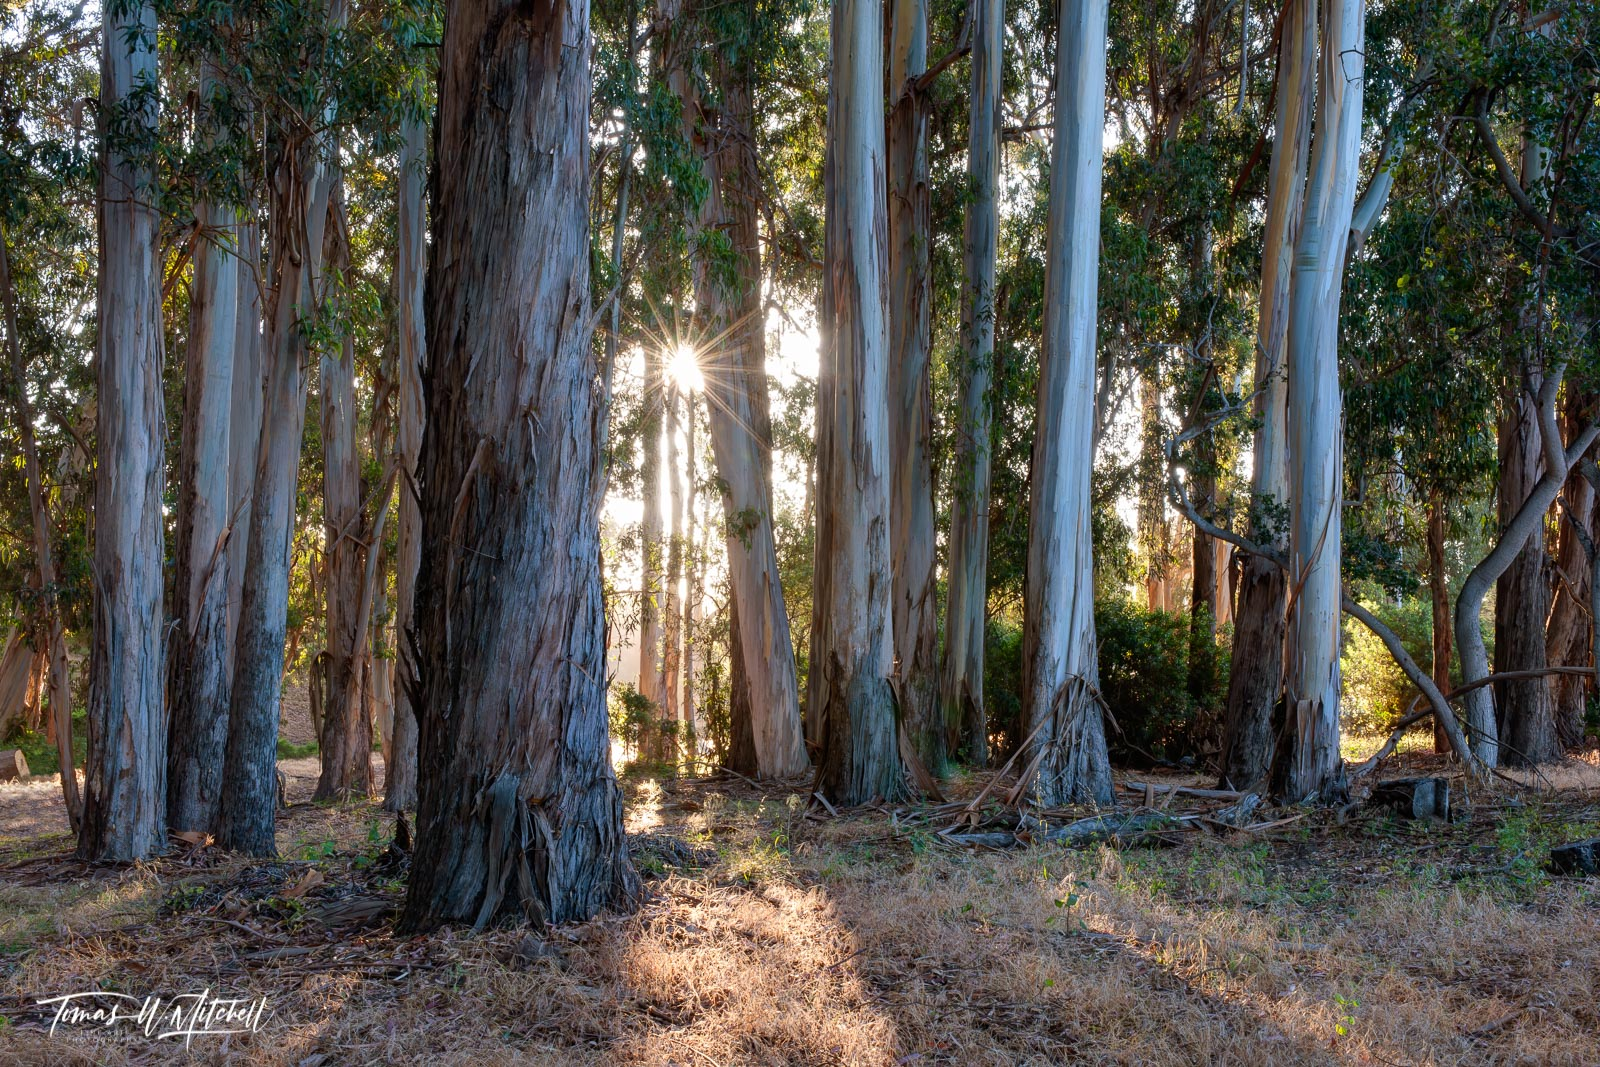 Limited Edition of 50 Museum Grade, Fine Art Prints. This photograph is part of my Eucalyptus Dawn Series of images taken on...